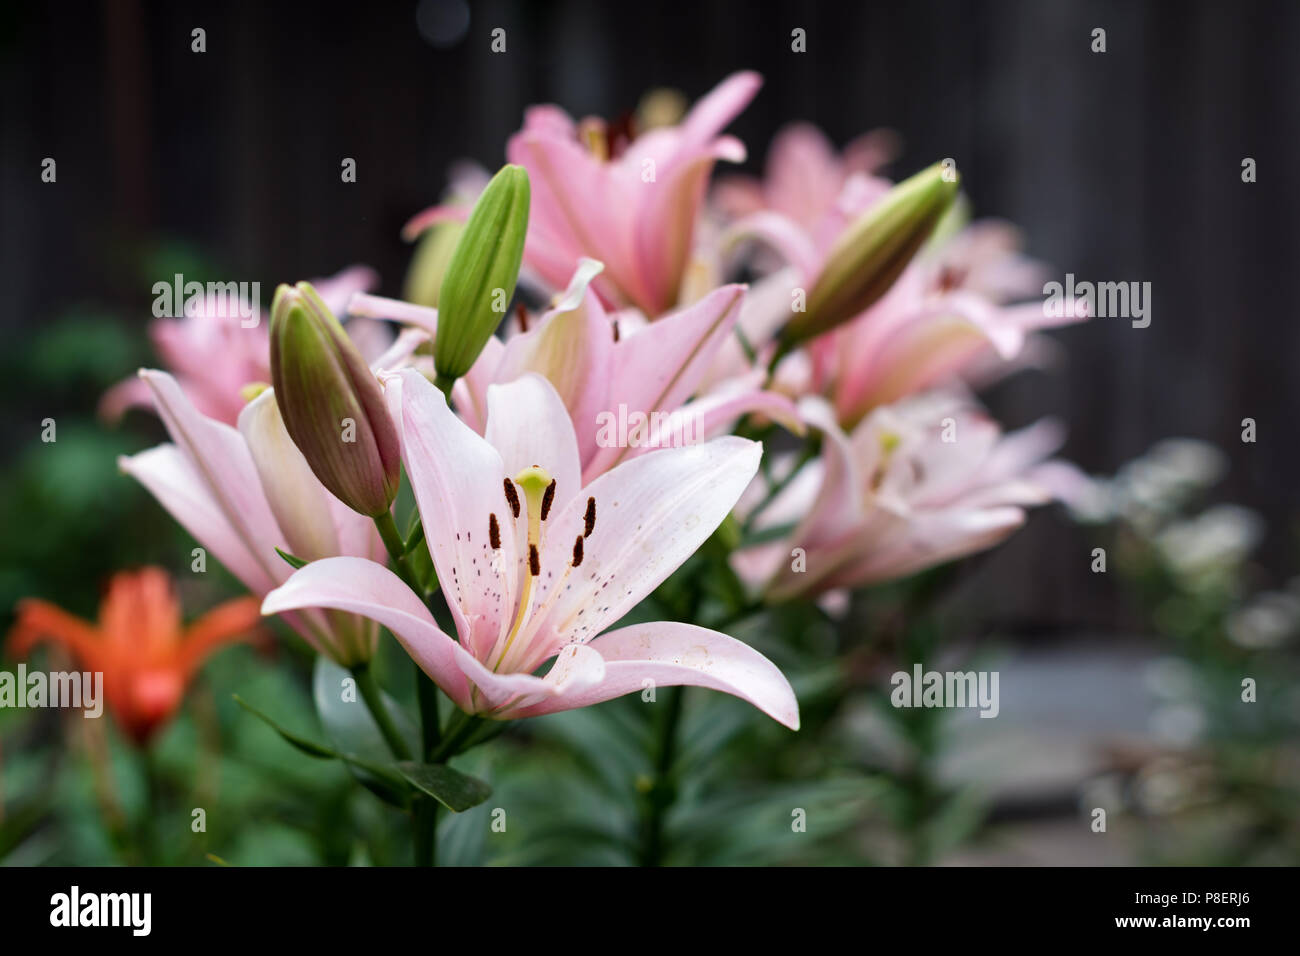 Flower White Pink Lily Bud Leaves Stock Photos & Flower